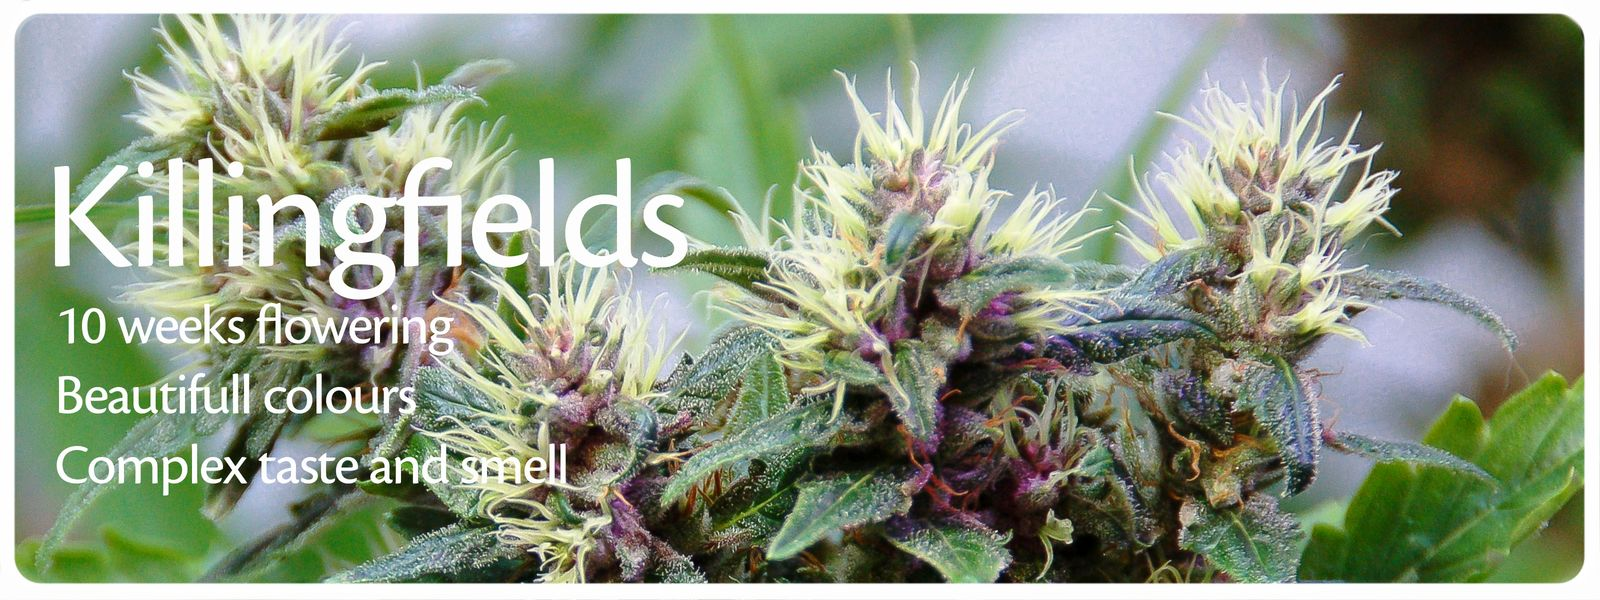 Killingfields feminized cannabis is a sativa dominant hybride with heavy buds and complex taste